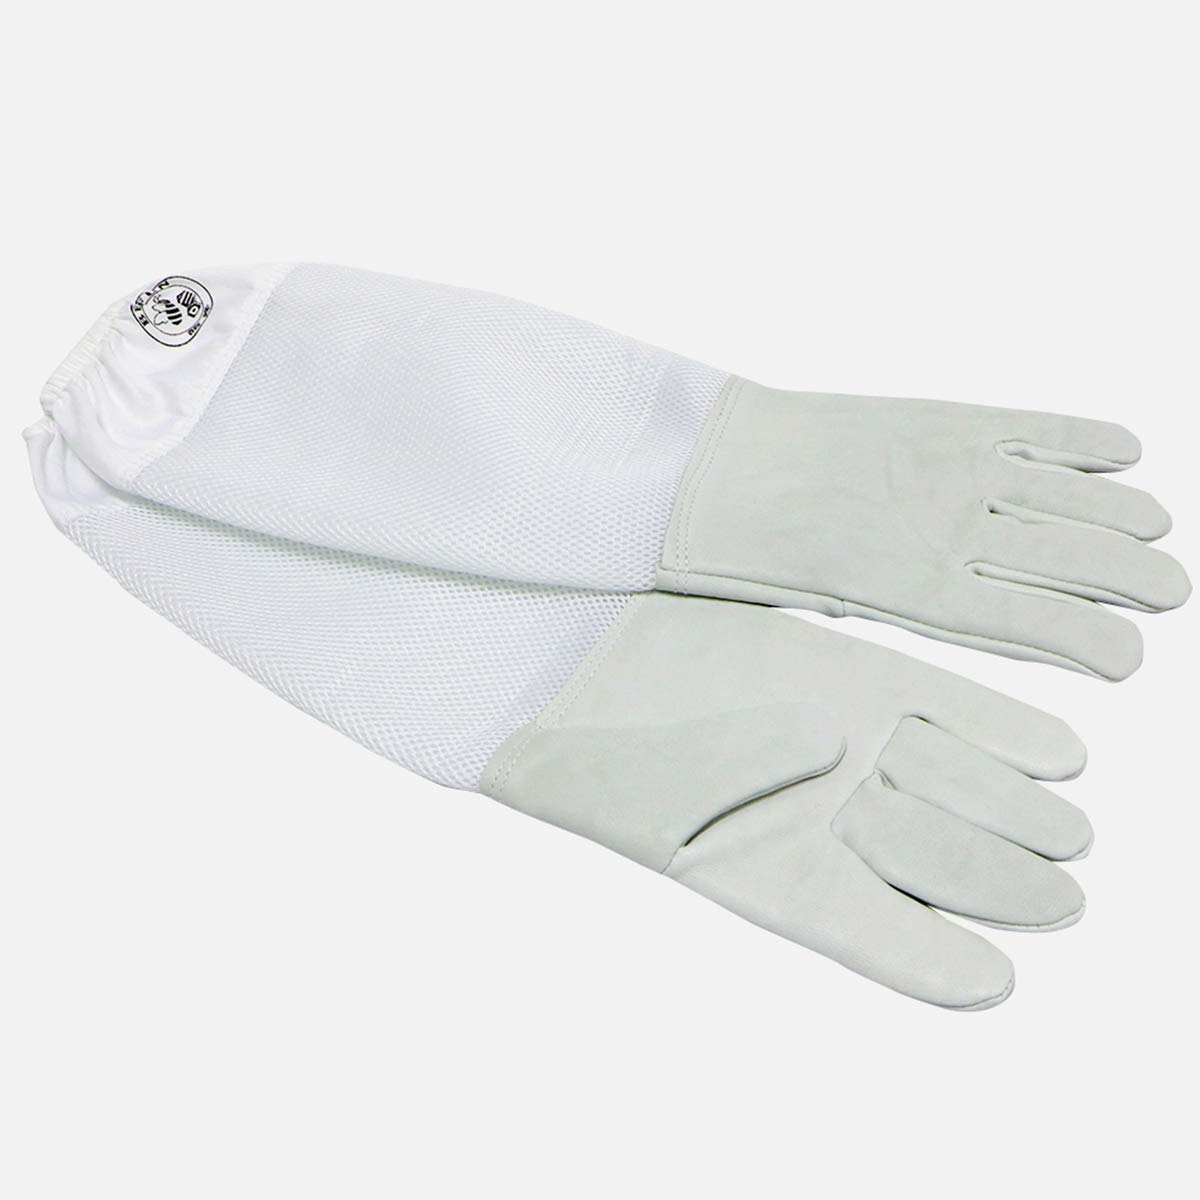 Beekeeping Leather Gloves - Beefun Goatskin Bee Gloves Canvas Protective Equipment with Vented Long Sleeves, White (L) by Beefun